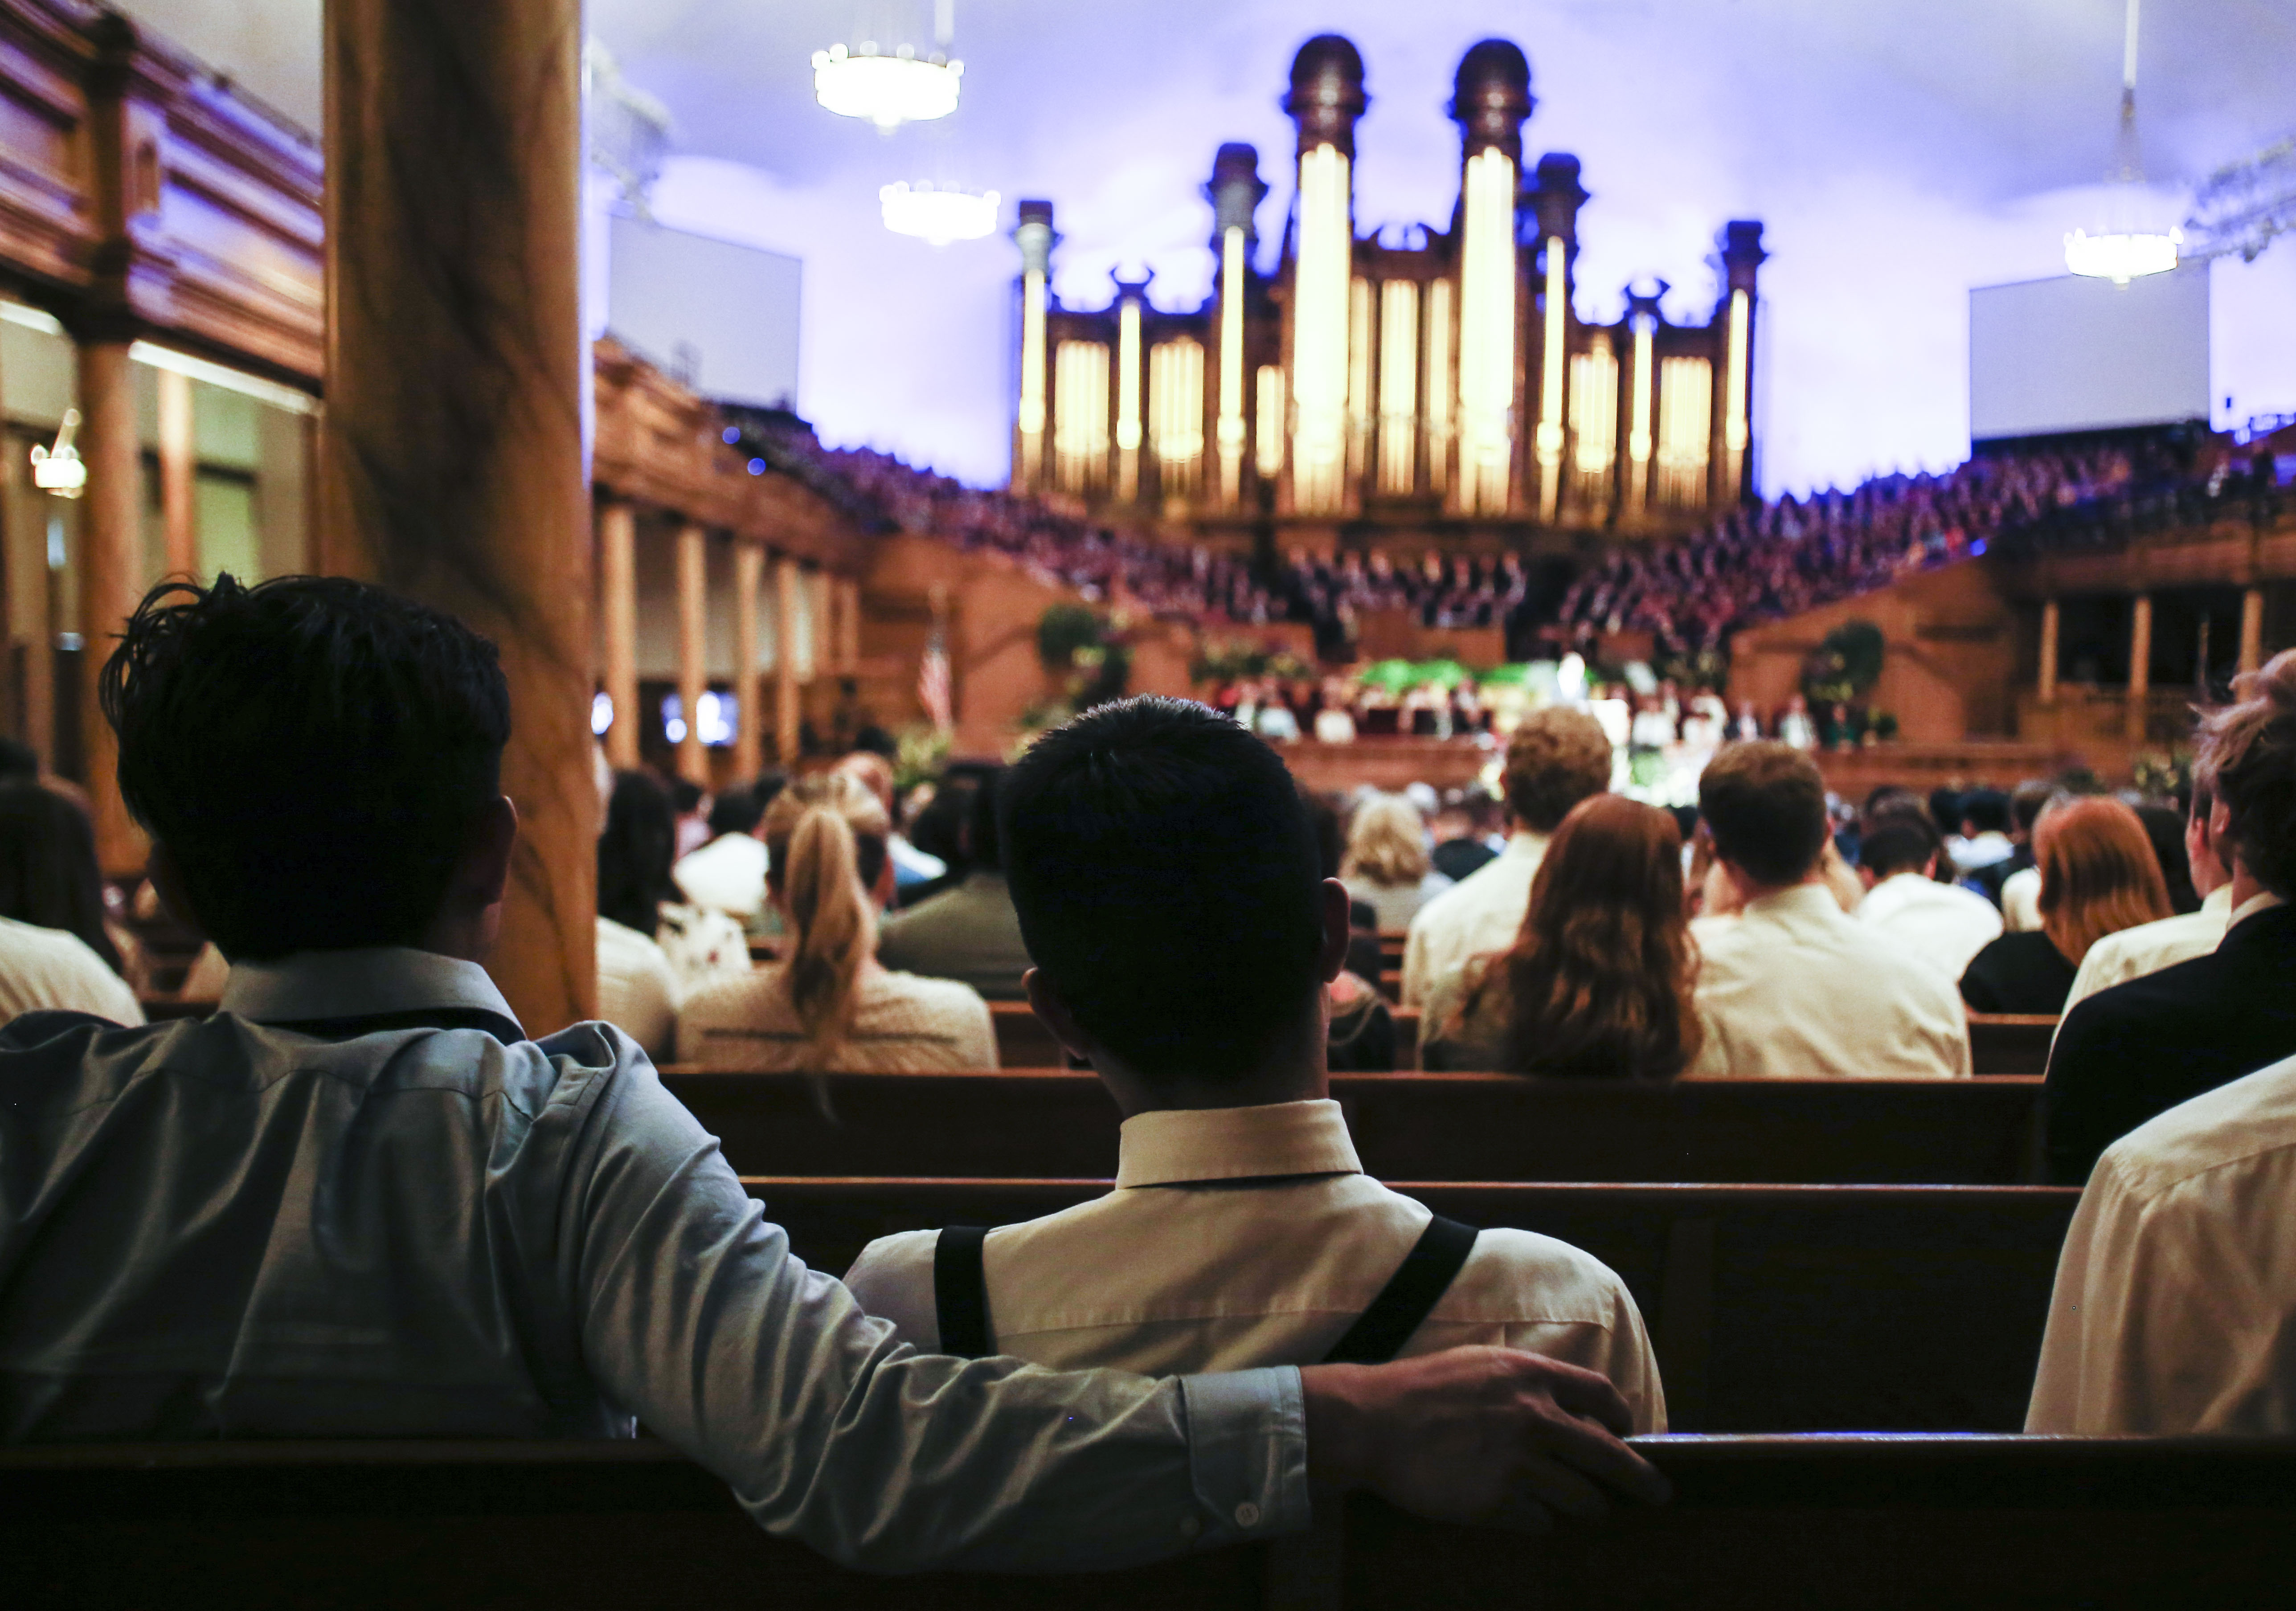 Attendees listen to Elder Carl B. Cook speak about marriage during the Worldwide Devotional for Young Adults at the Salt Lake Tabernacle in Salt Lake City on Sunday, May 5, 2019.